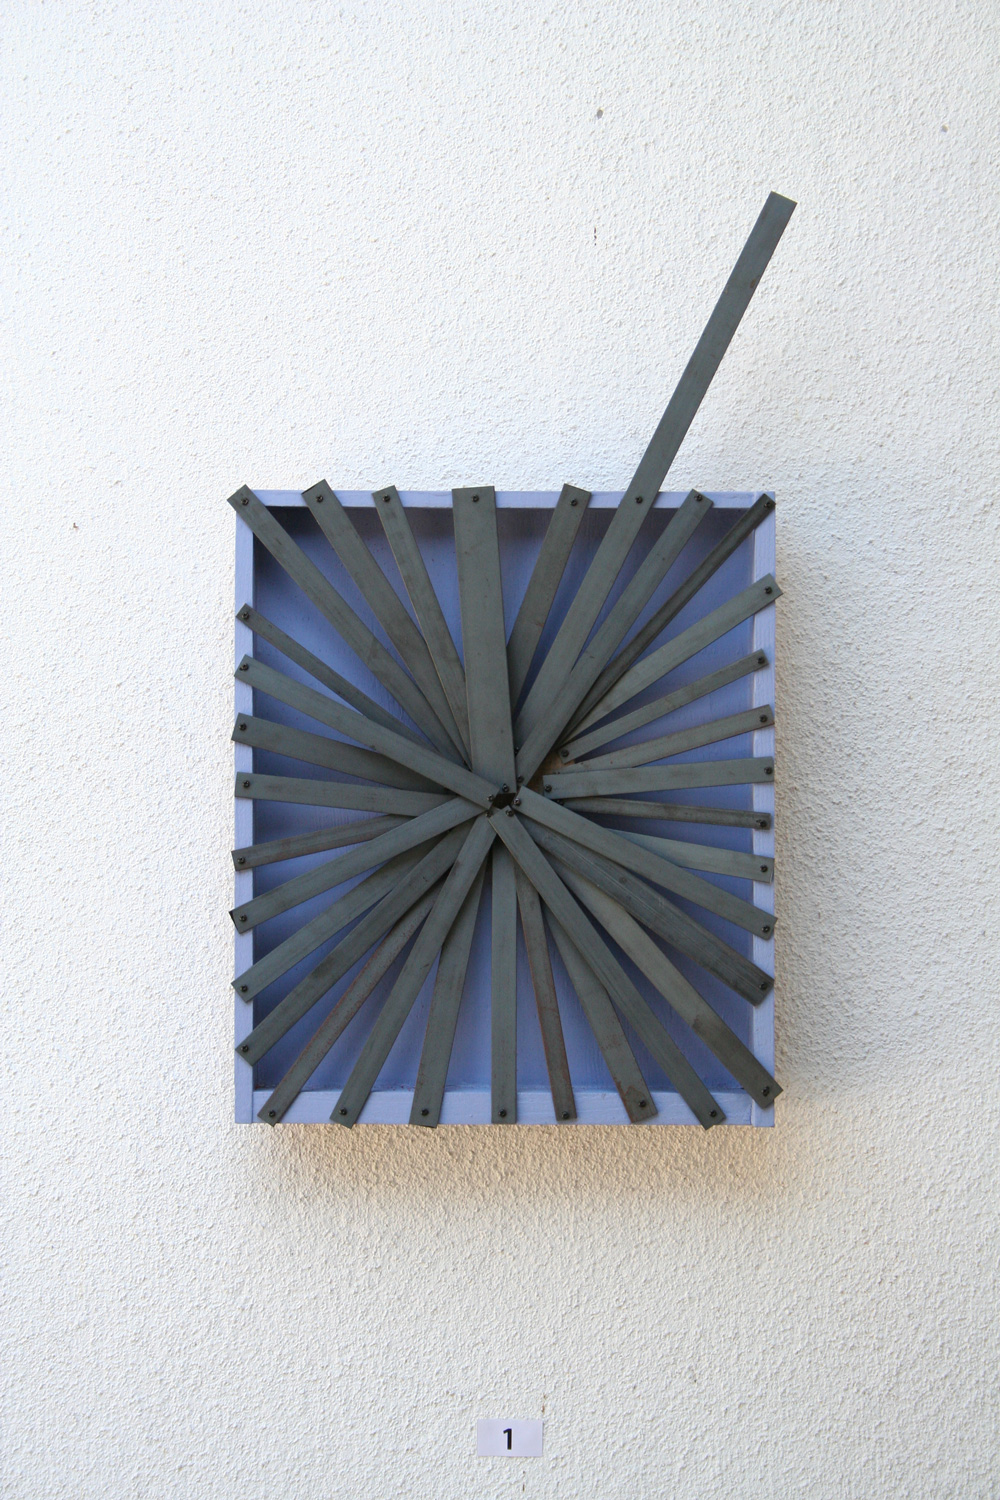 Concentrating , 2009 集向化 ( Shūkōka ) Wood, steel, acrylic 27 1/8 x 15 3/4 x 2 3/8 inches 69 x 40 x 6 cm